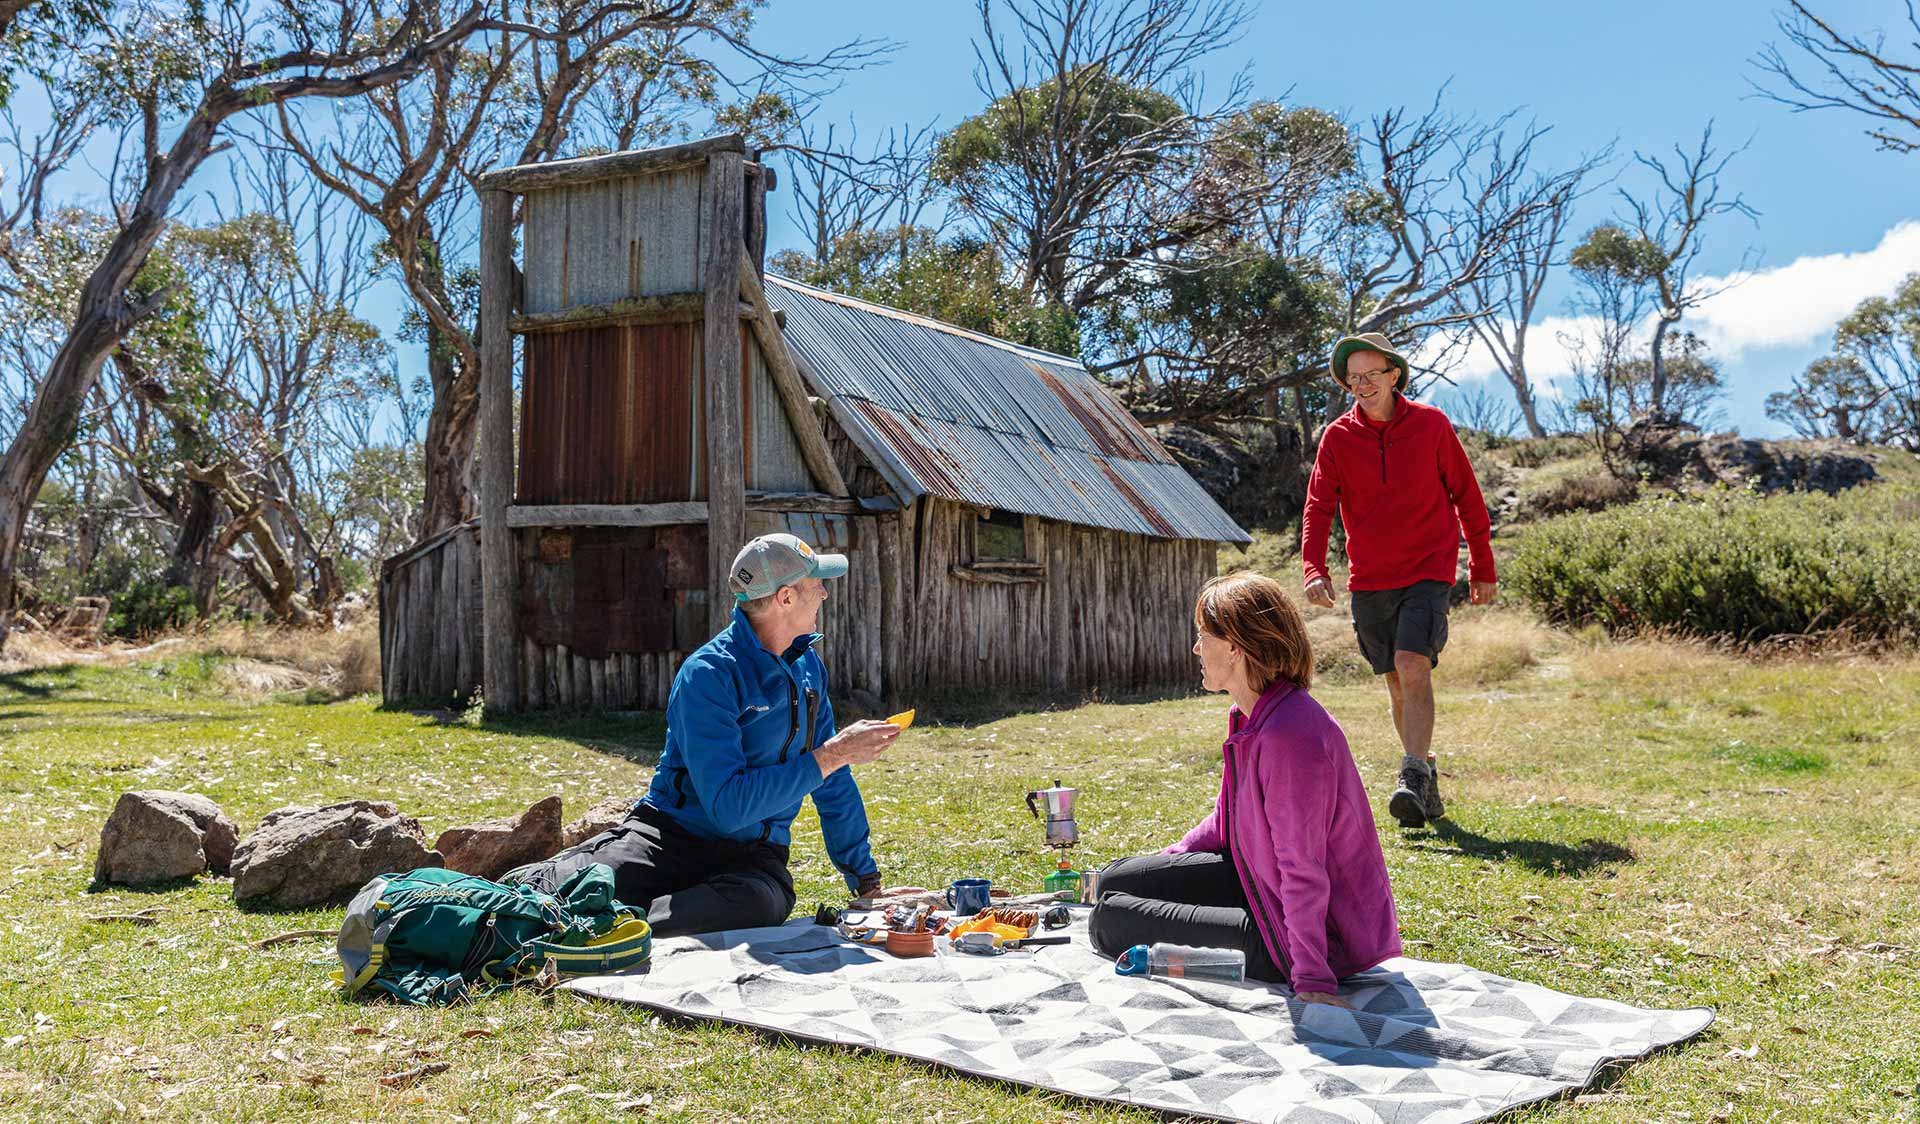 Three friends enjoy a picnic on the grass in front of the historic Wallace Hut.